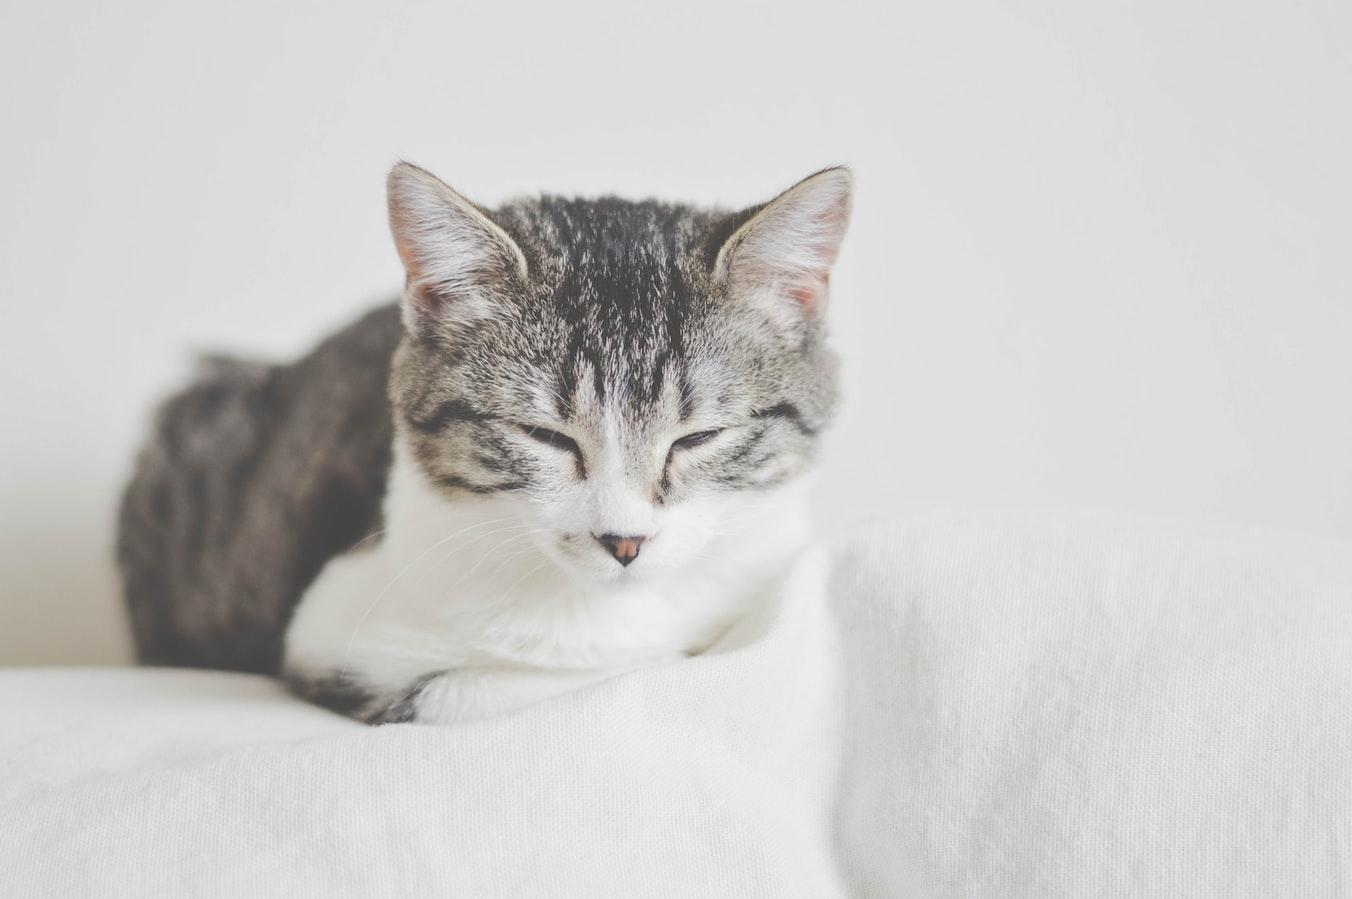 Signs that your cat might be depressed